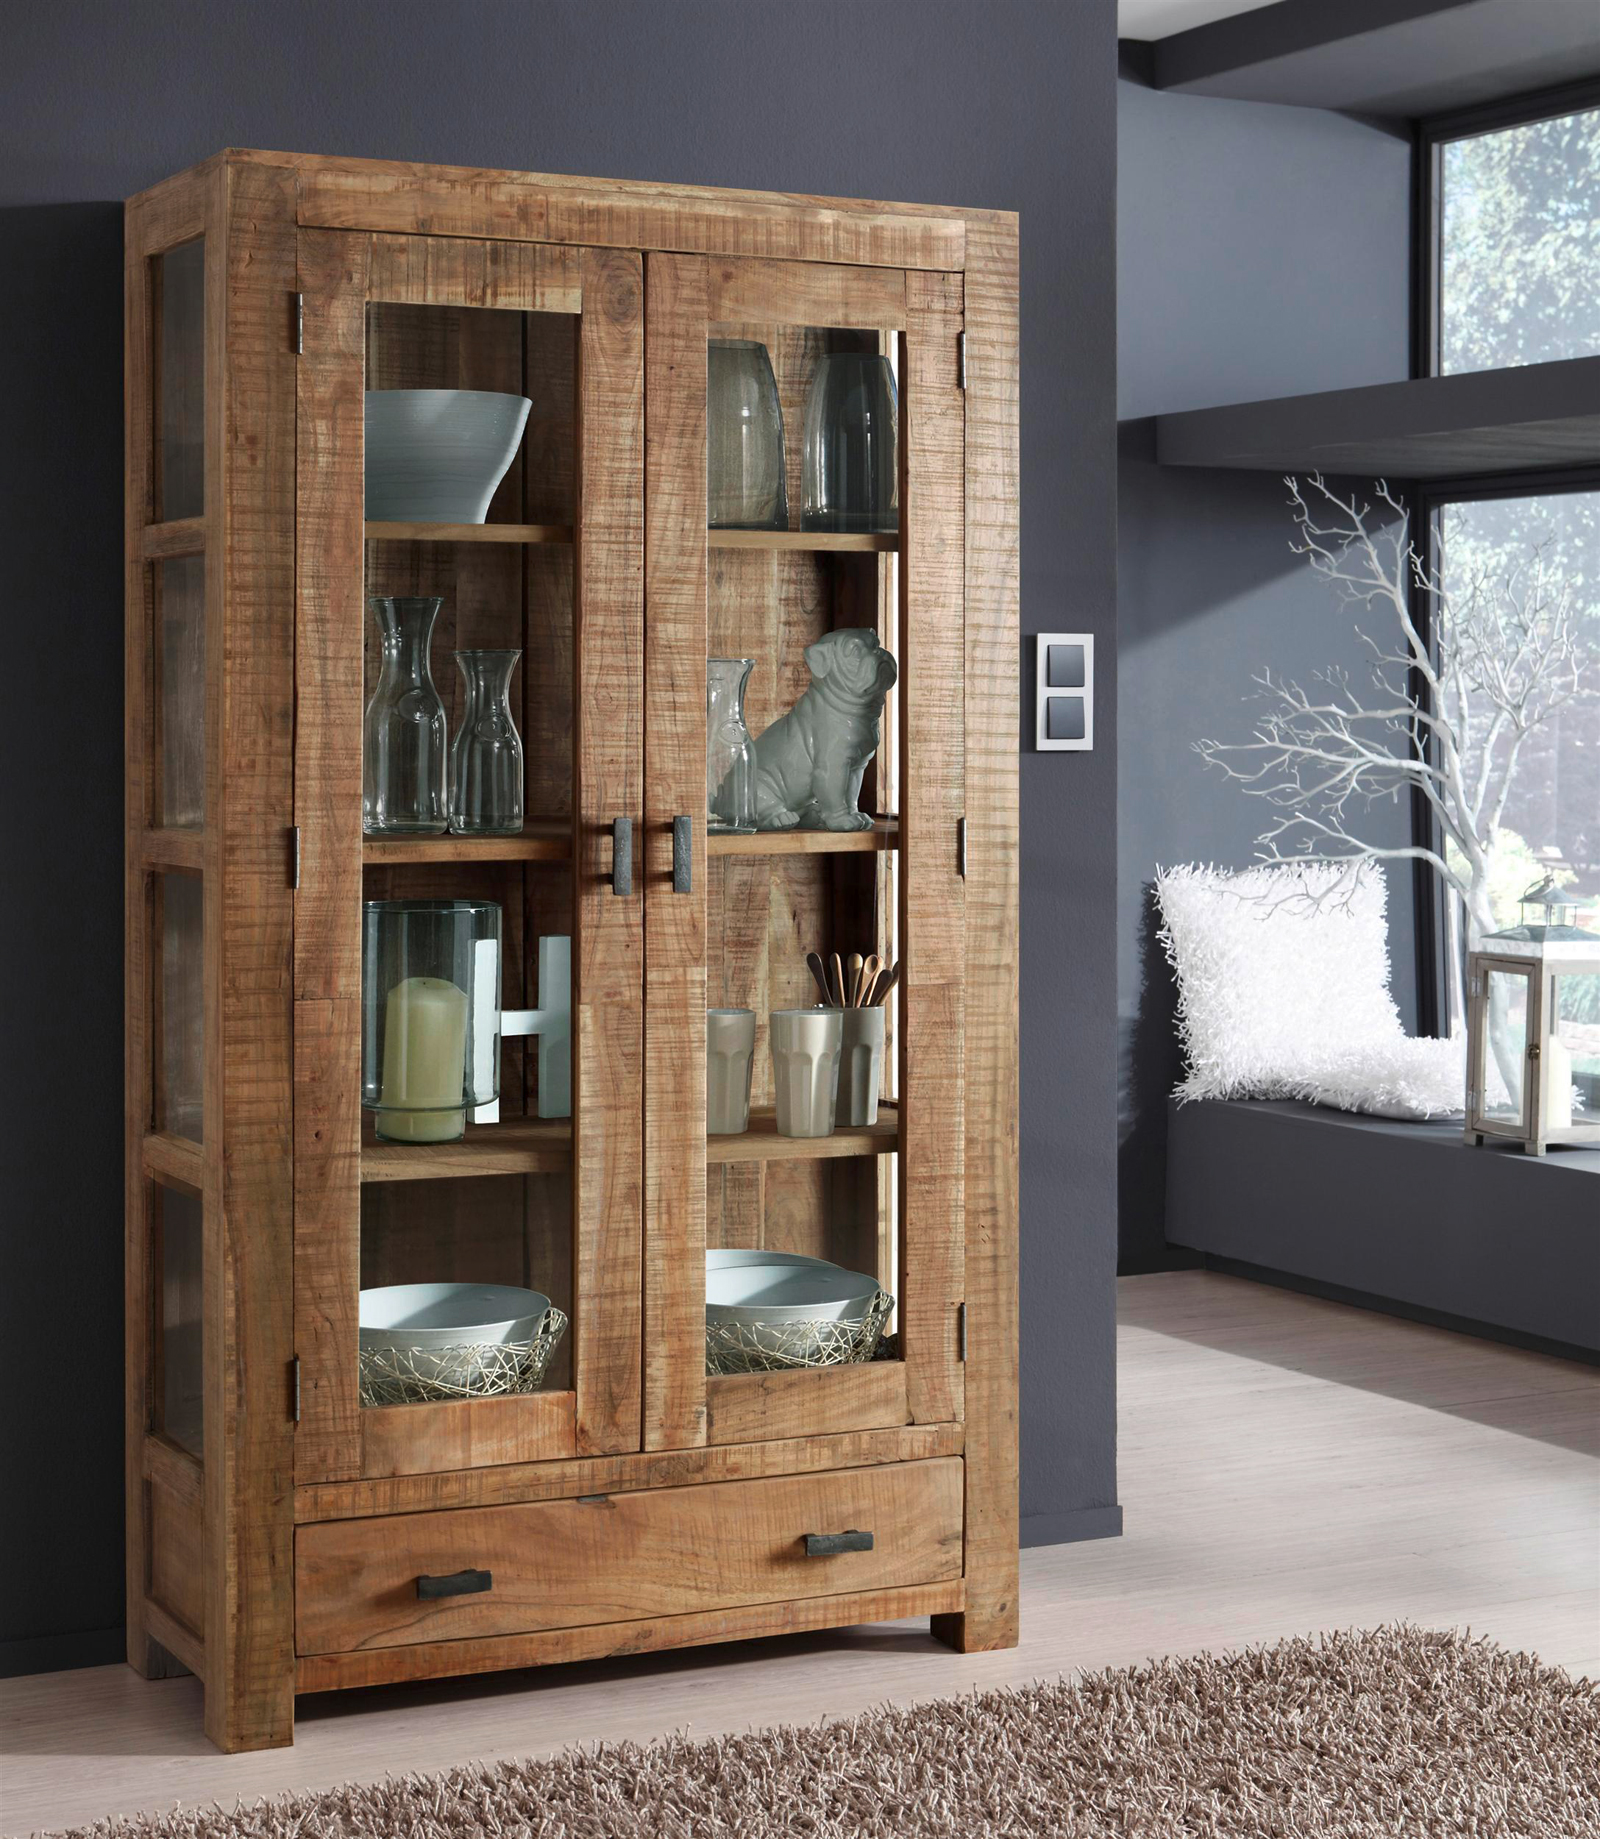 vitrine massivholz affordable vitrine in kernbuche teil massiv gelt with vitrine massivholz. Black Bedroom Furniture Sets. Home Design Ideas